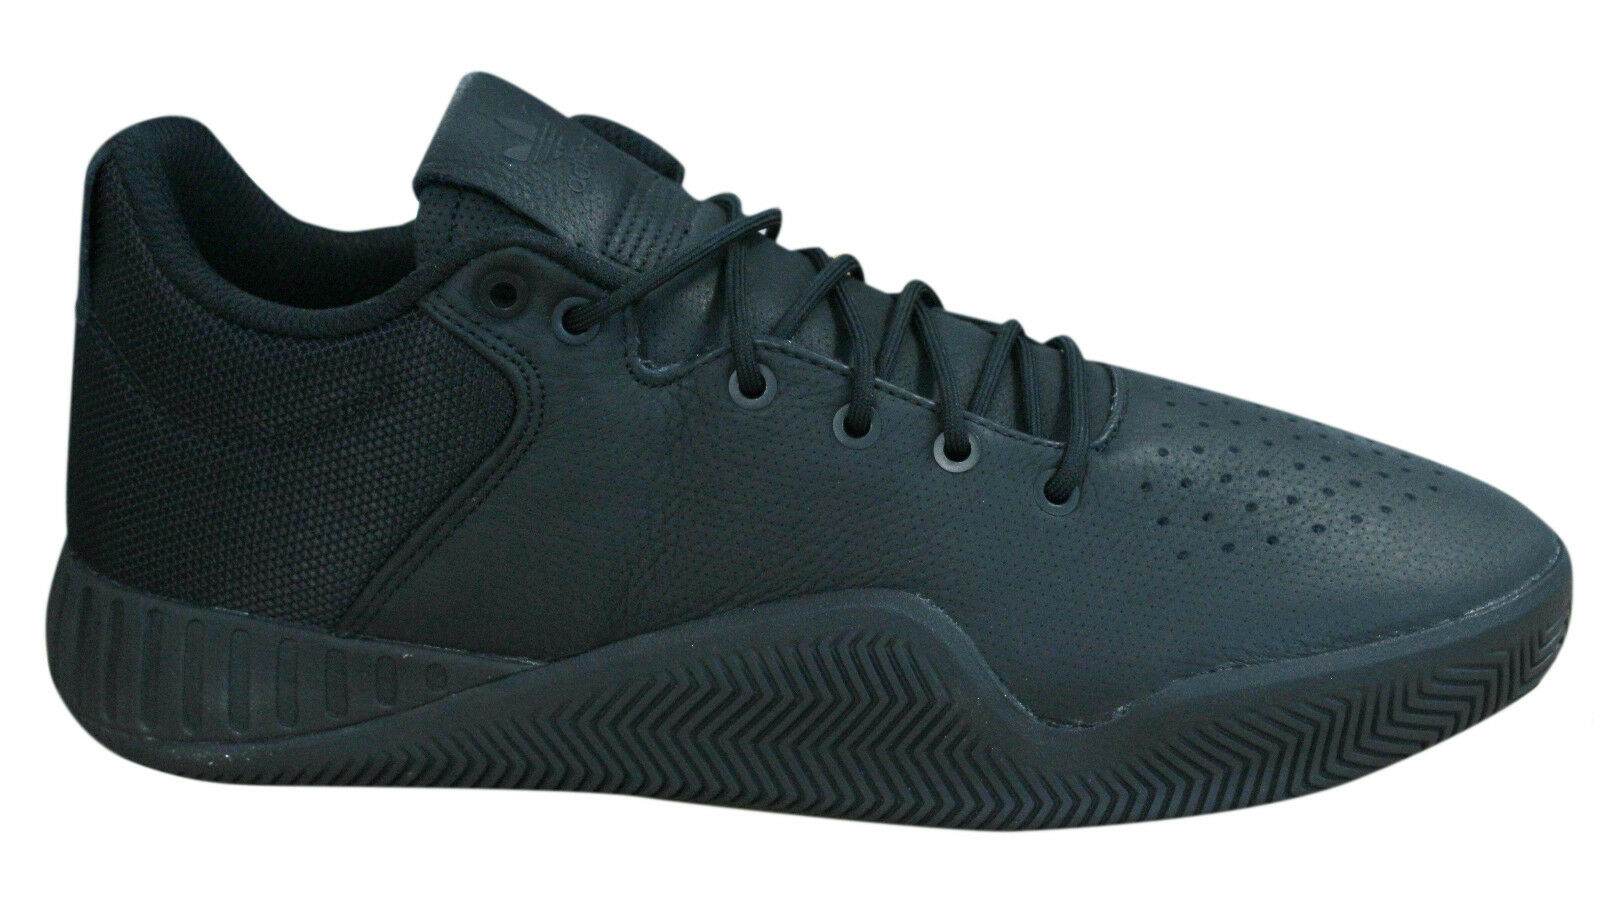 timeless design 43836 6bb79 Details about Adidas Originals Tubular Instinct Low Lace Up Mens Trainers  Black BY3157 D23